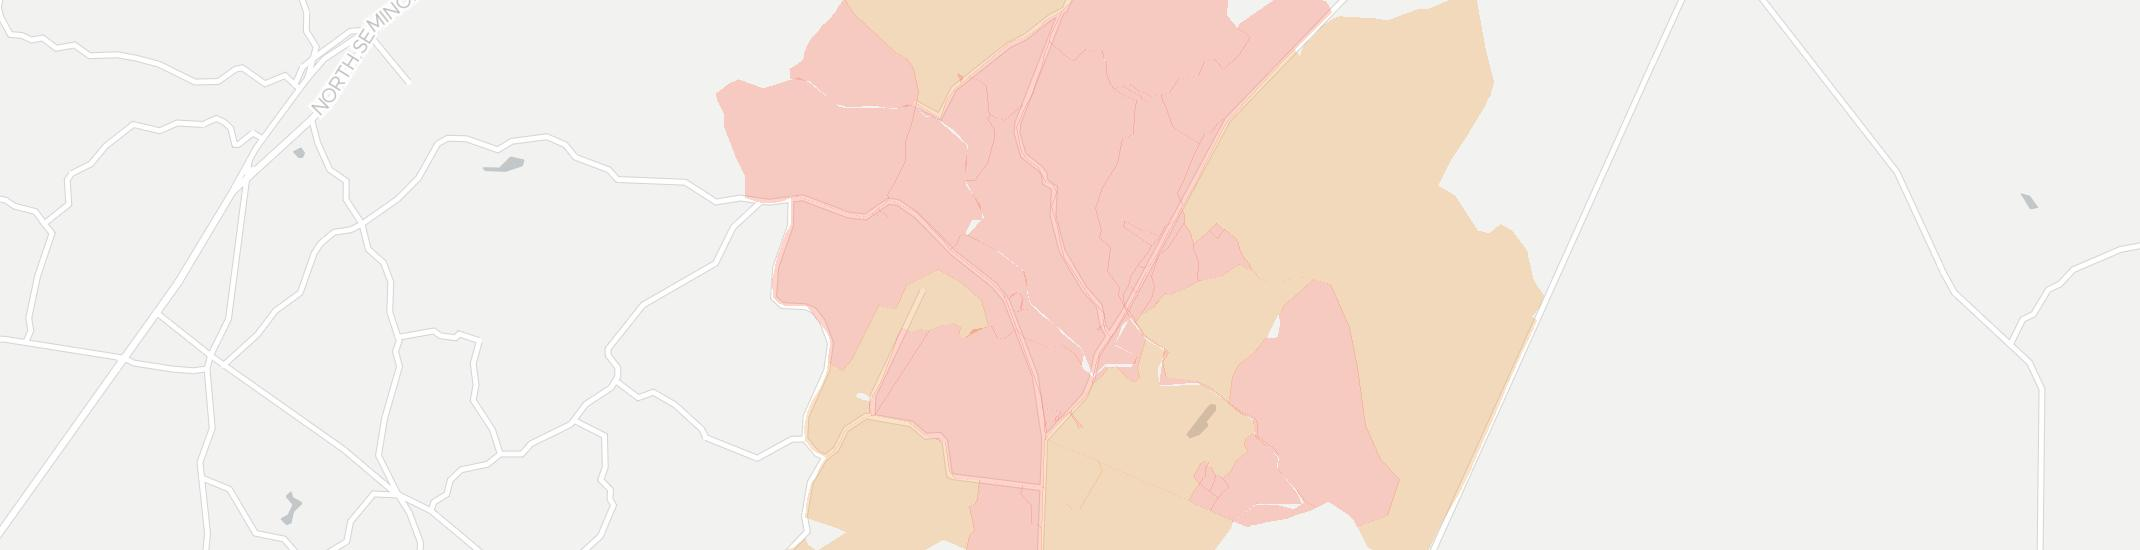 Locust Dale Internet Competition Map. Click for interactive map.